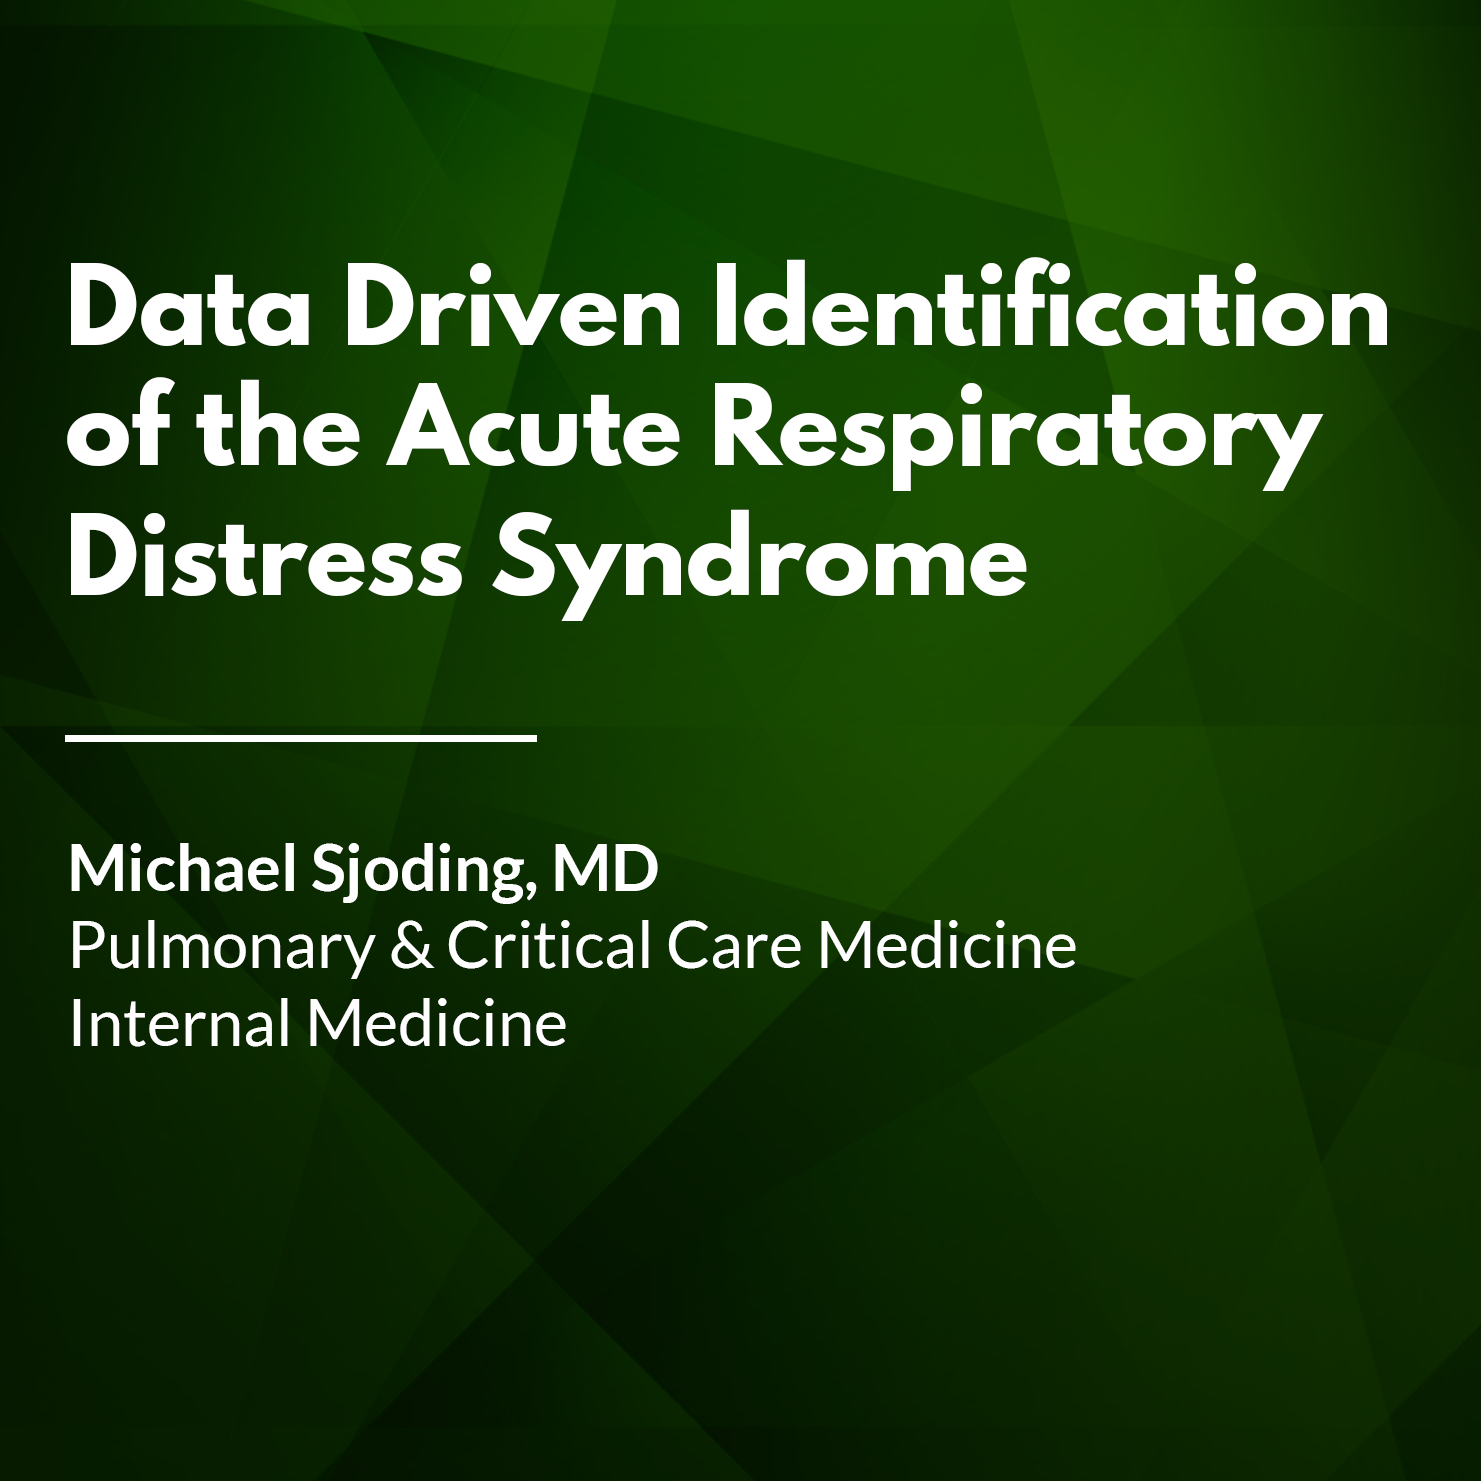 Data Driven Identification of the Acute Respiratory Distress Syndrome.png